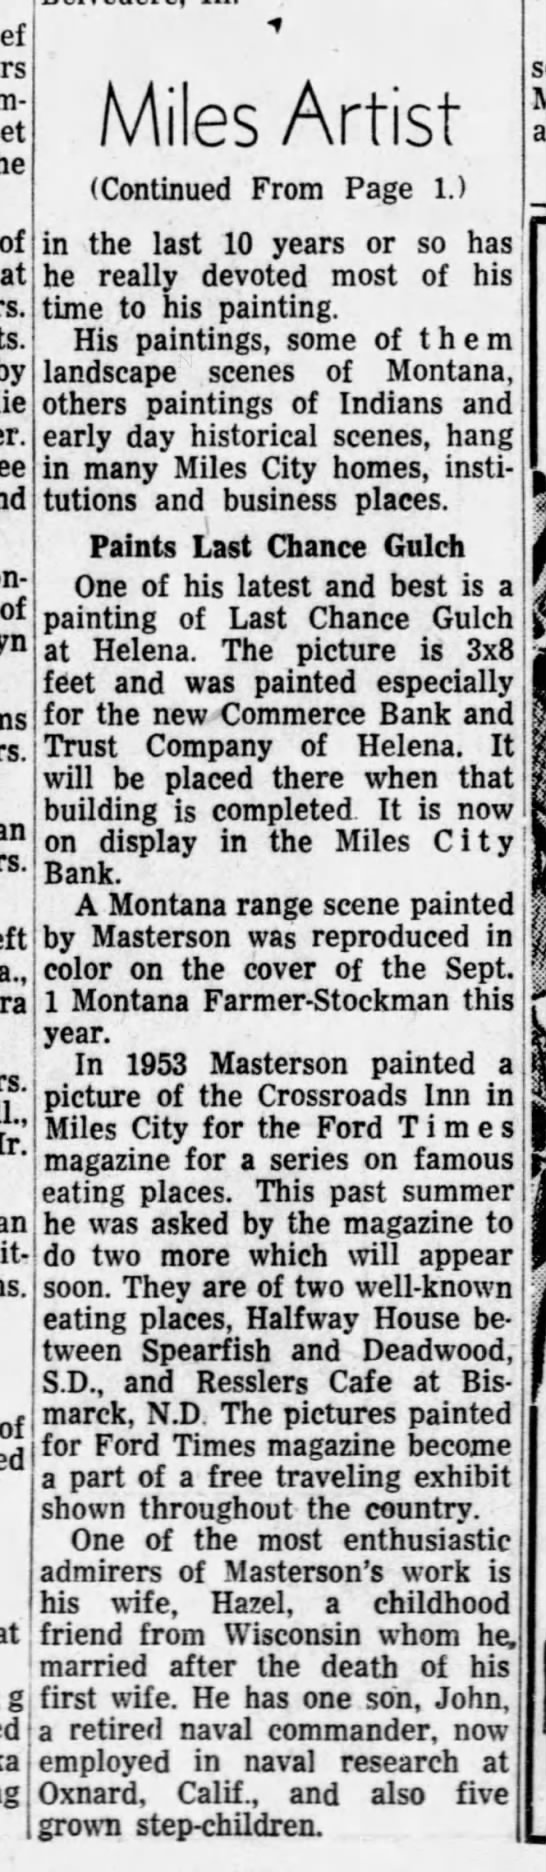 "MASTERSON, James ""Miles Artist) continued from (see below) 2 of 2 -"